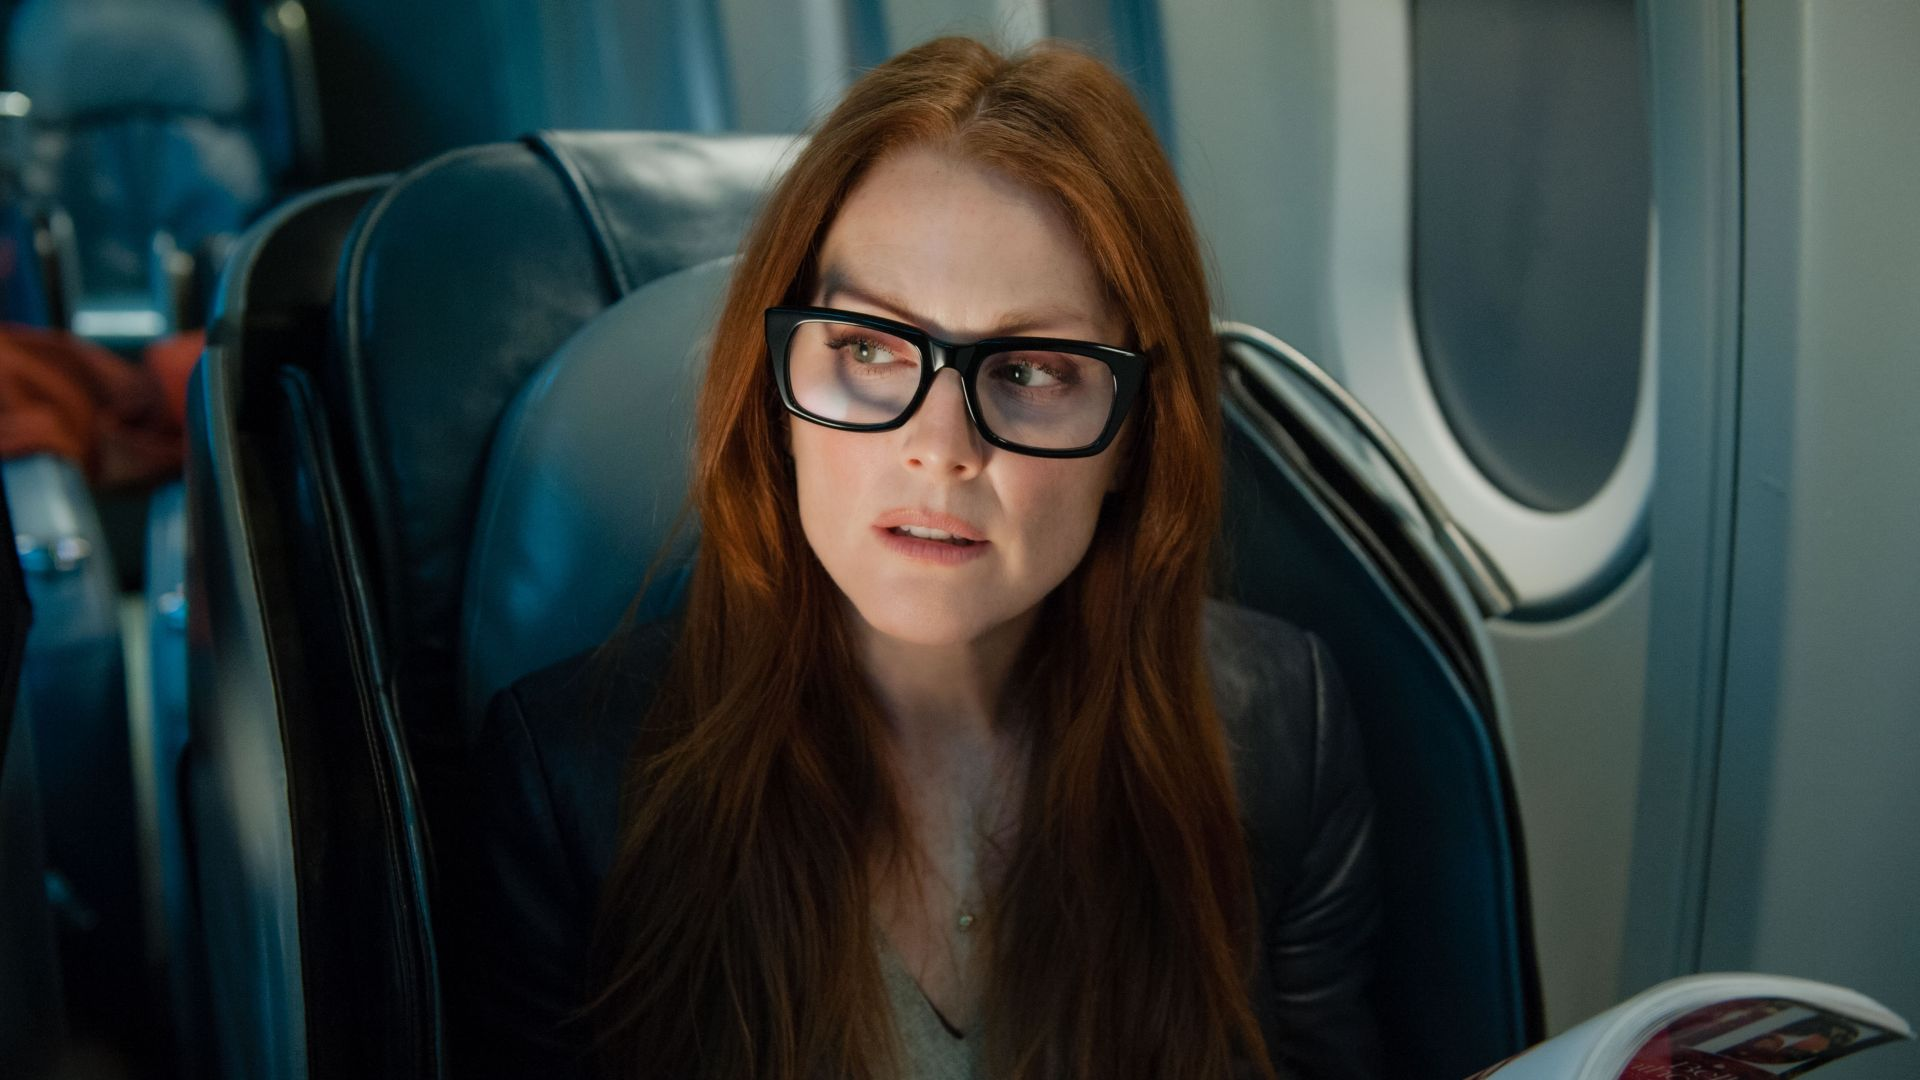 Julianne Moore, Julie Anne Smith, Actress, model, sofa, red hair, lion, cub, look, room, interior